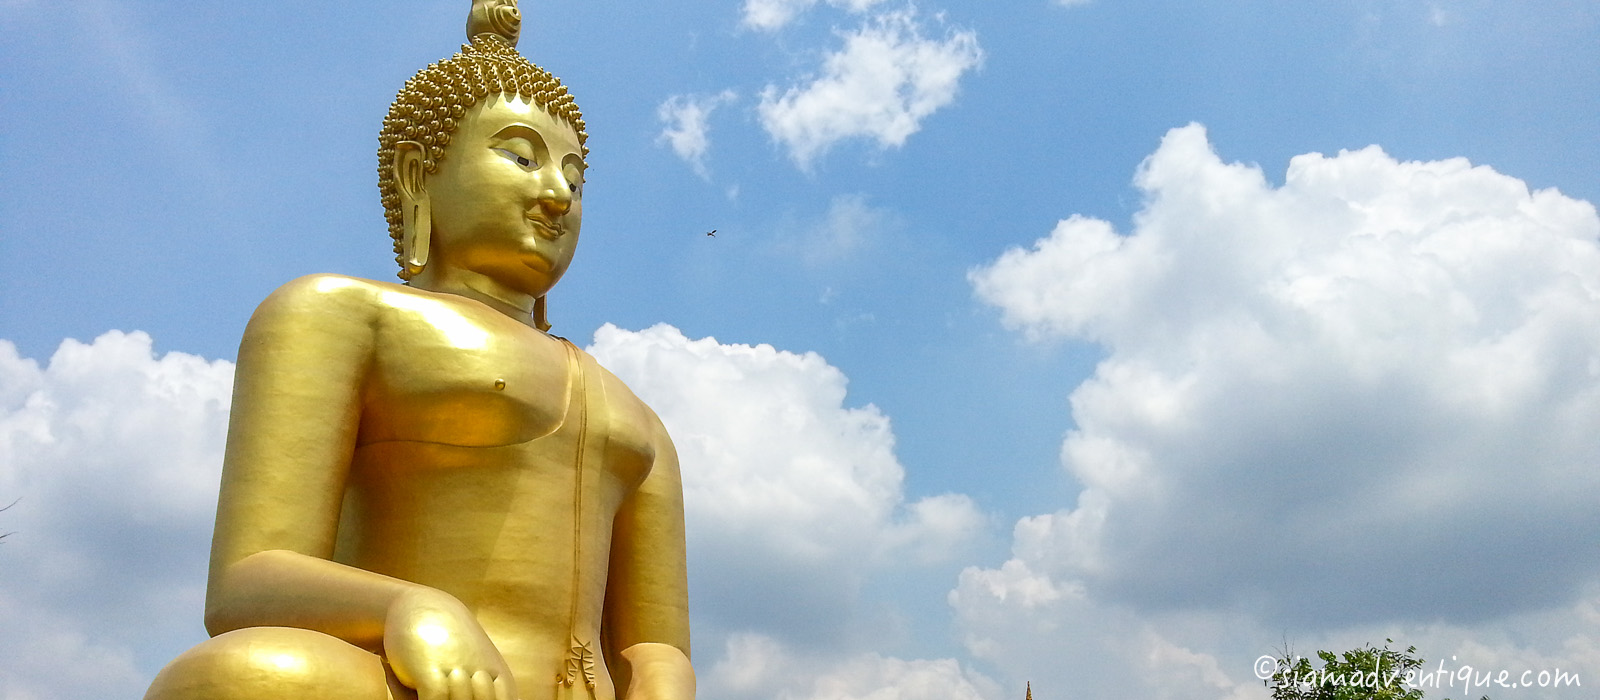 The Great Buddha of Thailand